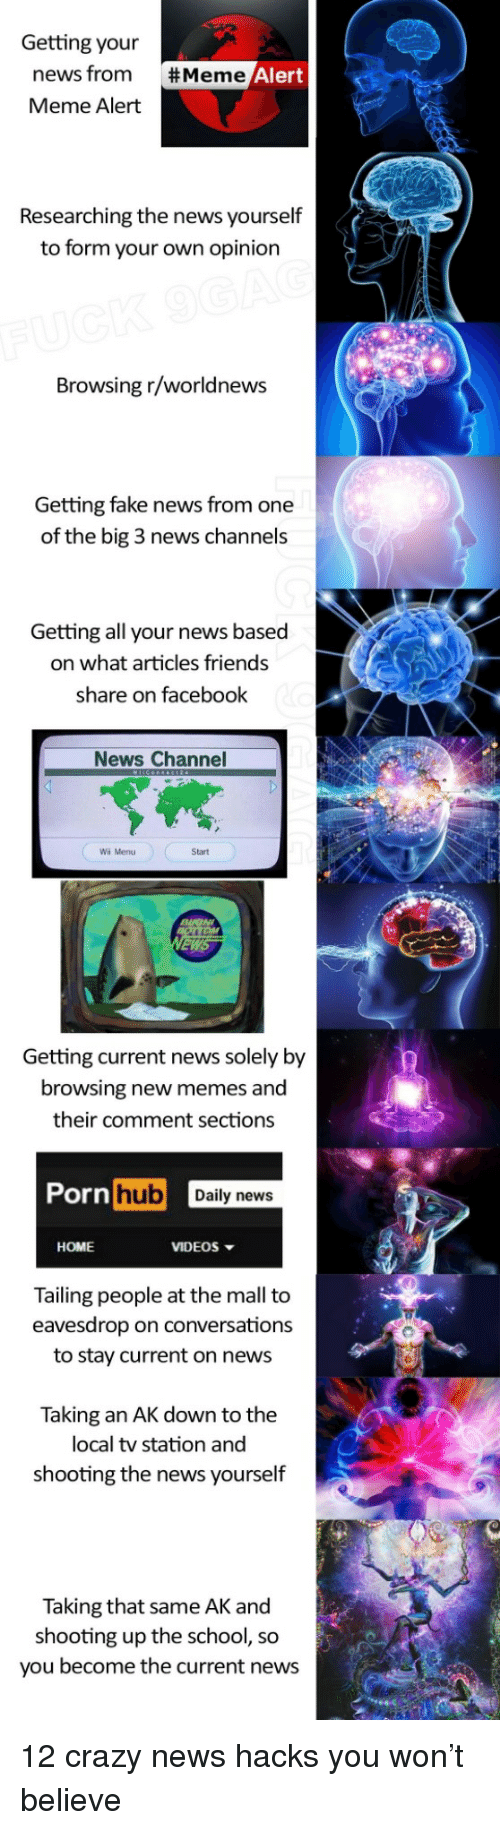 Crazy, Facebook, and Fake: Getting your  news from  Meme Alert  #Meme  Researching the news yourself  to form your own opinion  Browsing r/worldnews  Getting fake news from one  of the big 3 news channels  Getting all your news based  on what articles friends  share on facebook  News Channel  Wii Menu  Start  Getting current news solely by  browsing new memes and  their comment sections  hub Daily news  HOME  VIDEOS  Tailing people at the mall to  eavesdrop on conversations  to stay current on news  Taking an AK down to the  local tv station and  shooting the news yourself  Taking that same AK and  shooting up the school, so  you become the current news <p>12 crazy news hacks you won&rsquo;t believe</p>